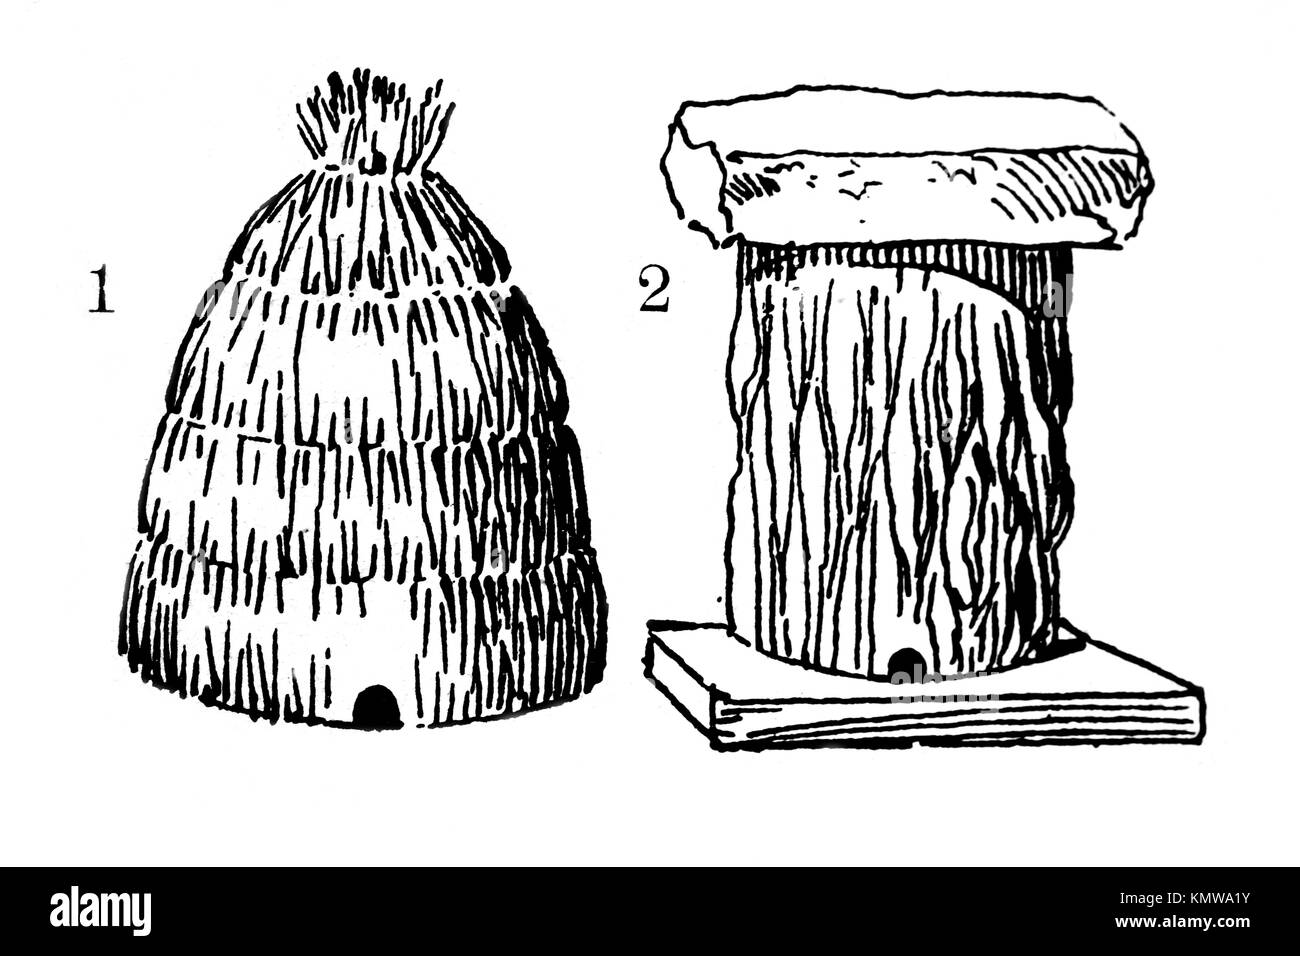 Old Hives Made Of Straw And Cork Book Illustration 1900